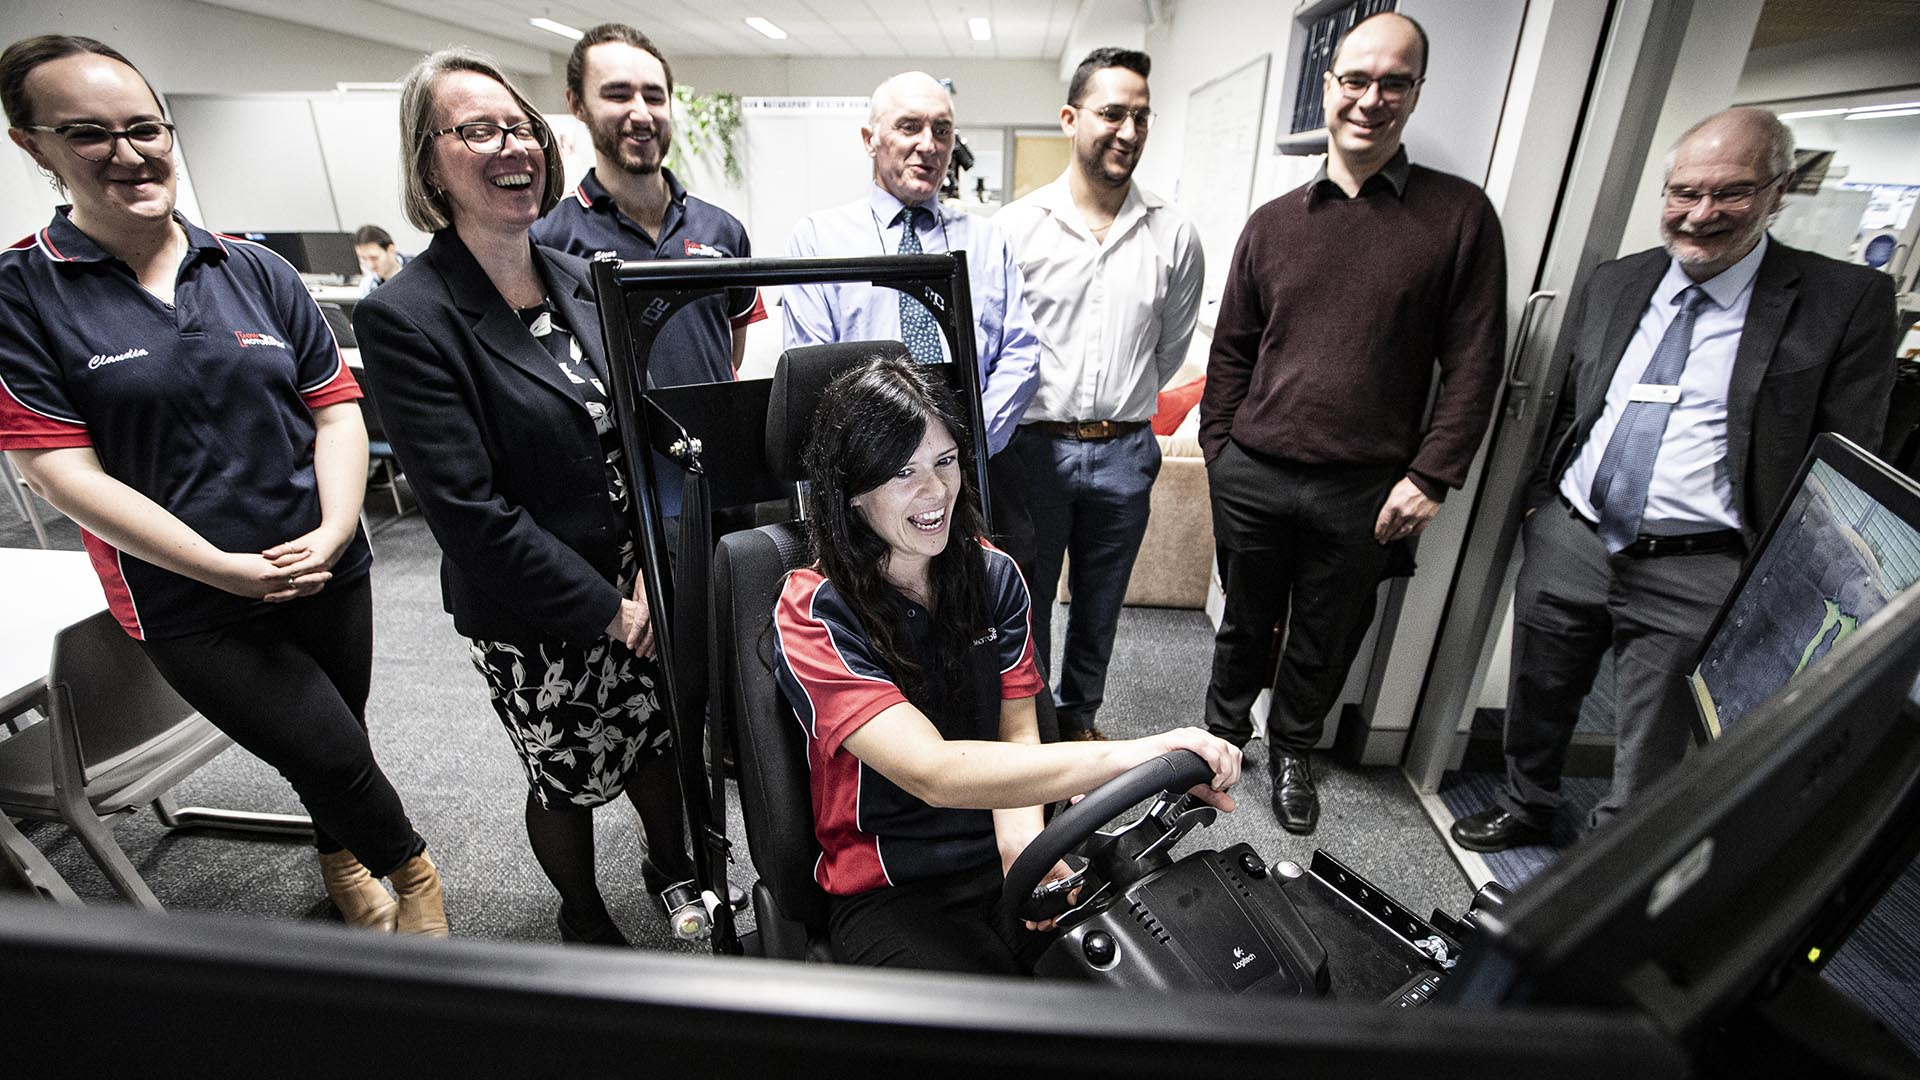 Driving simulator gives UOW Motorsport a competitive edge